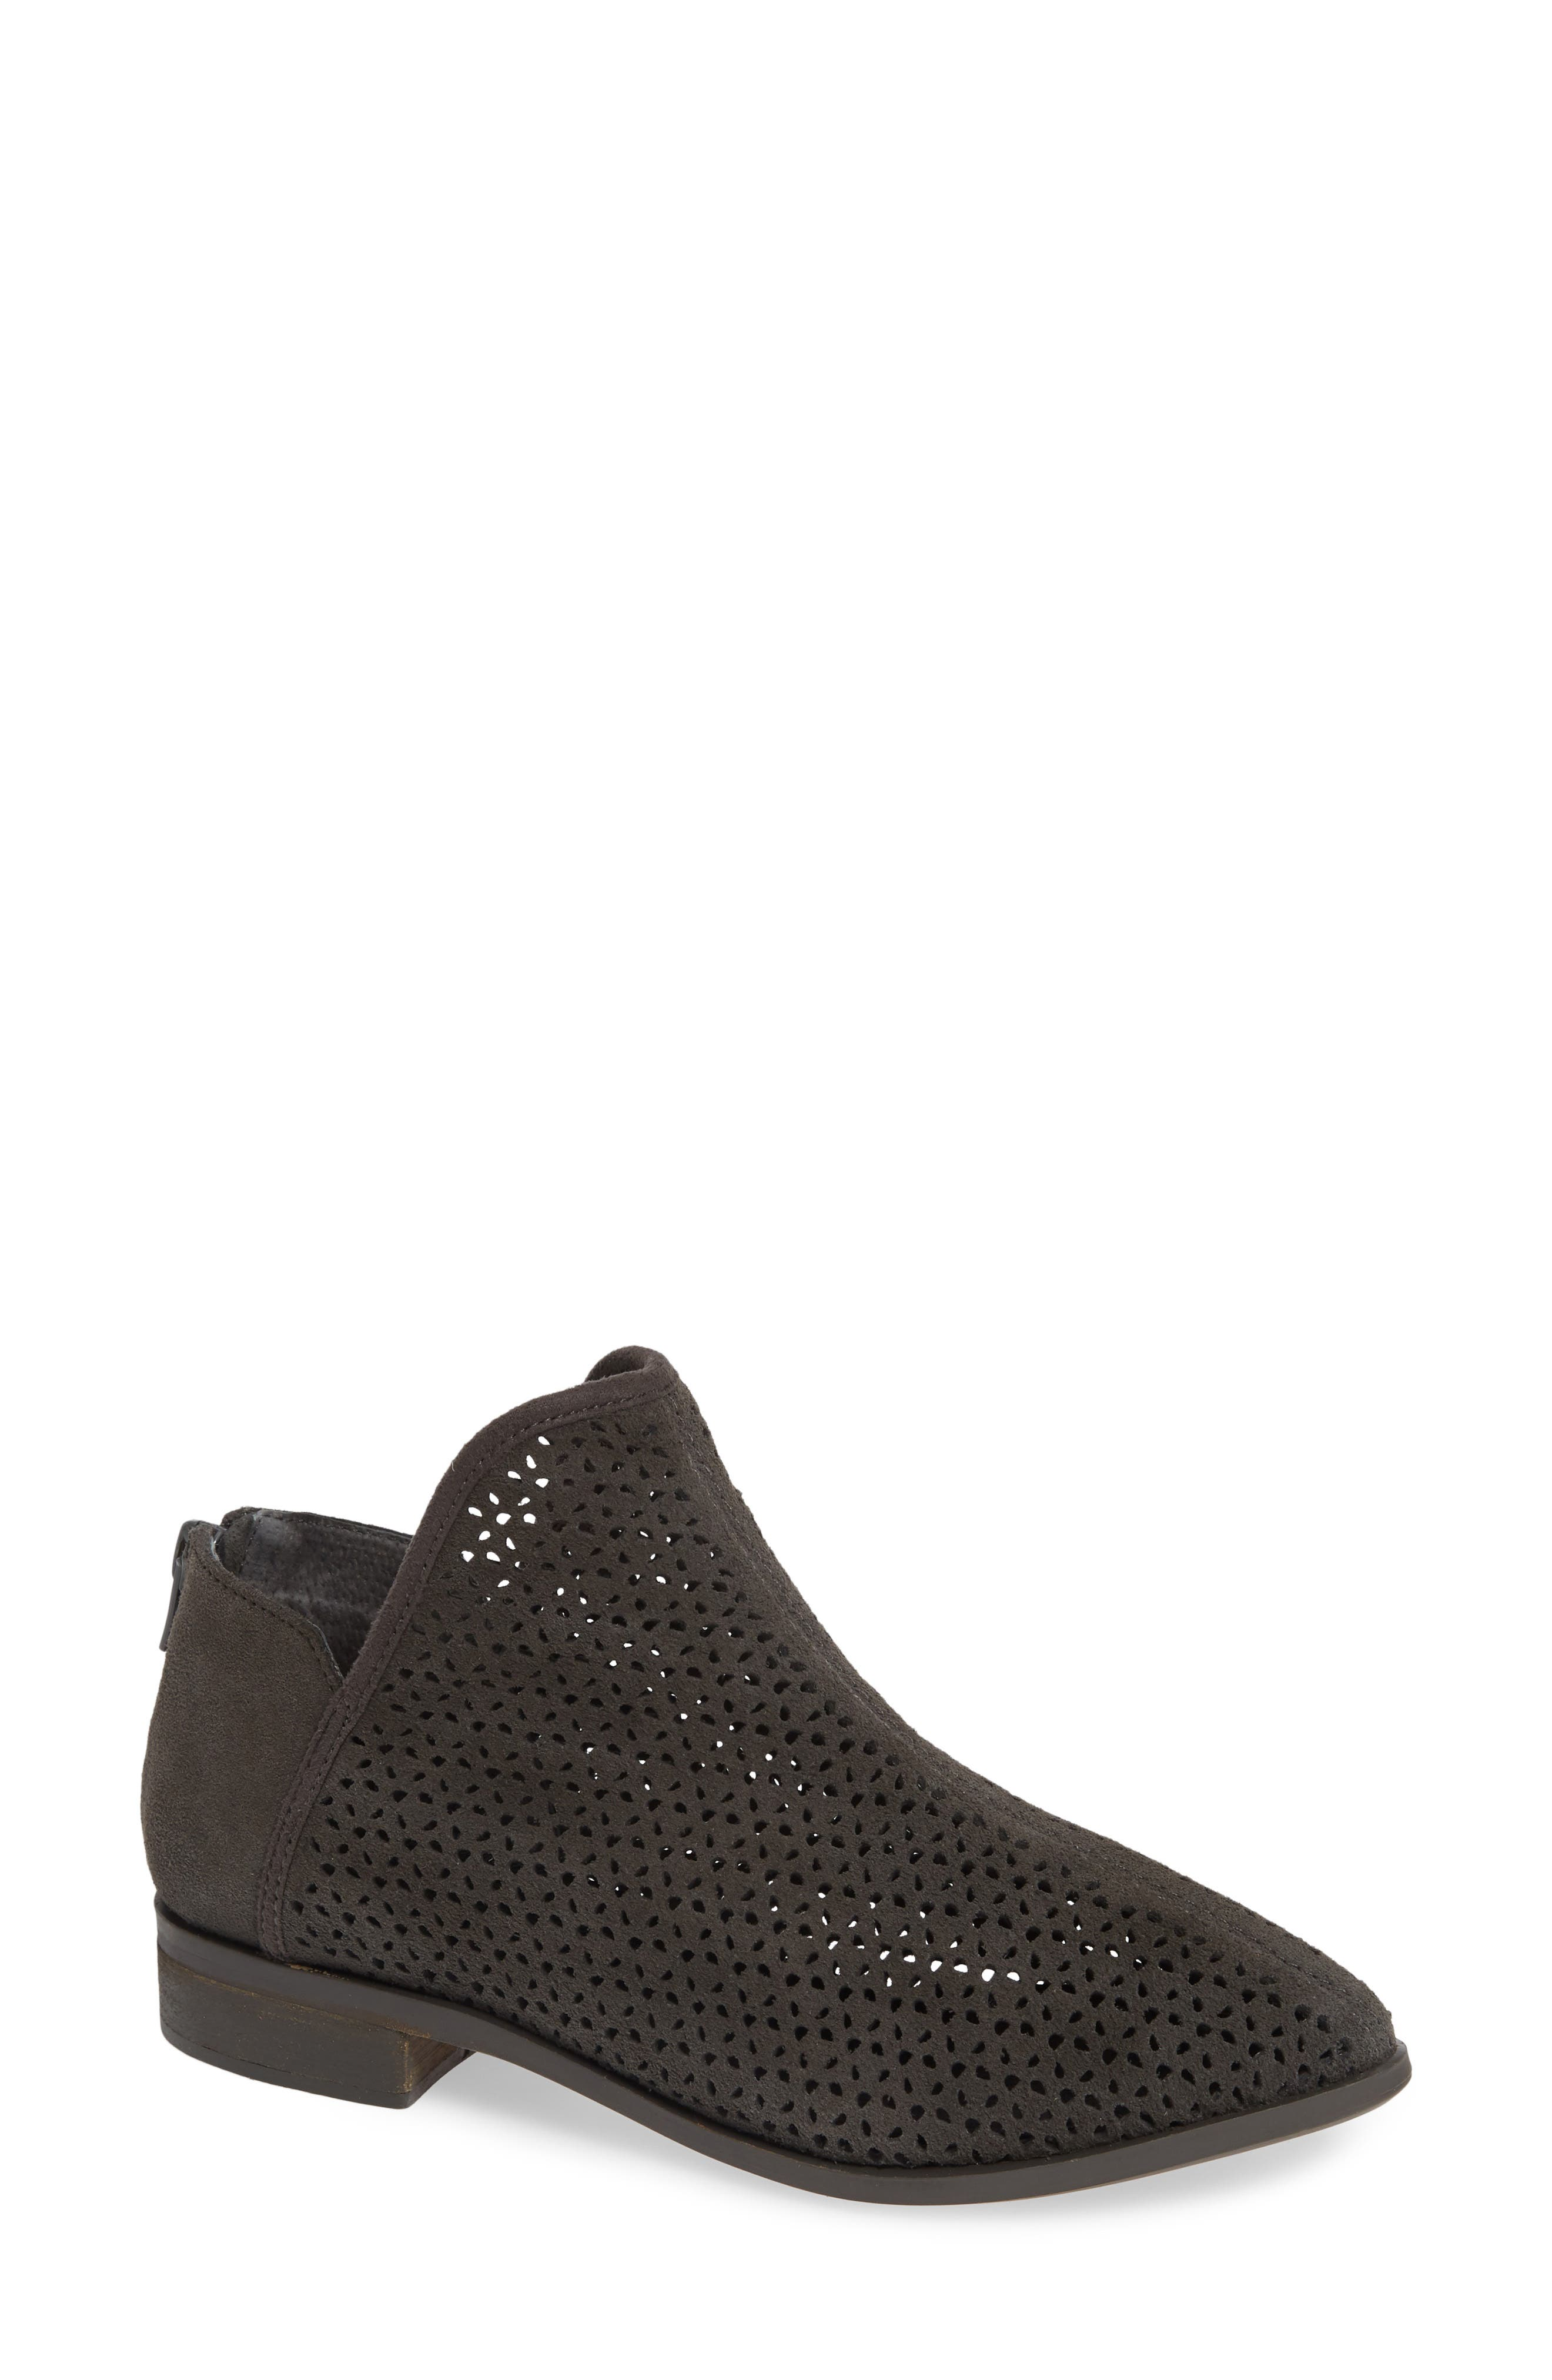 Kelsi Dagger Brooklyn Alley Perforated Bootie, Grey